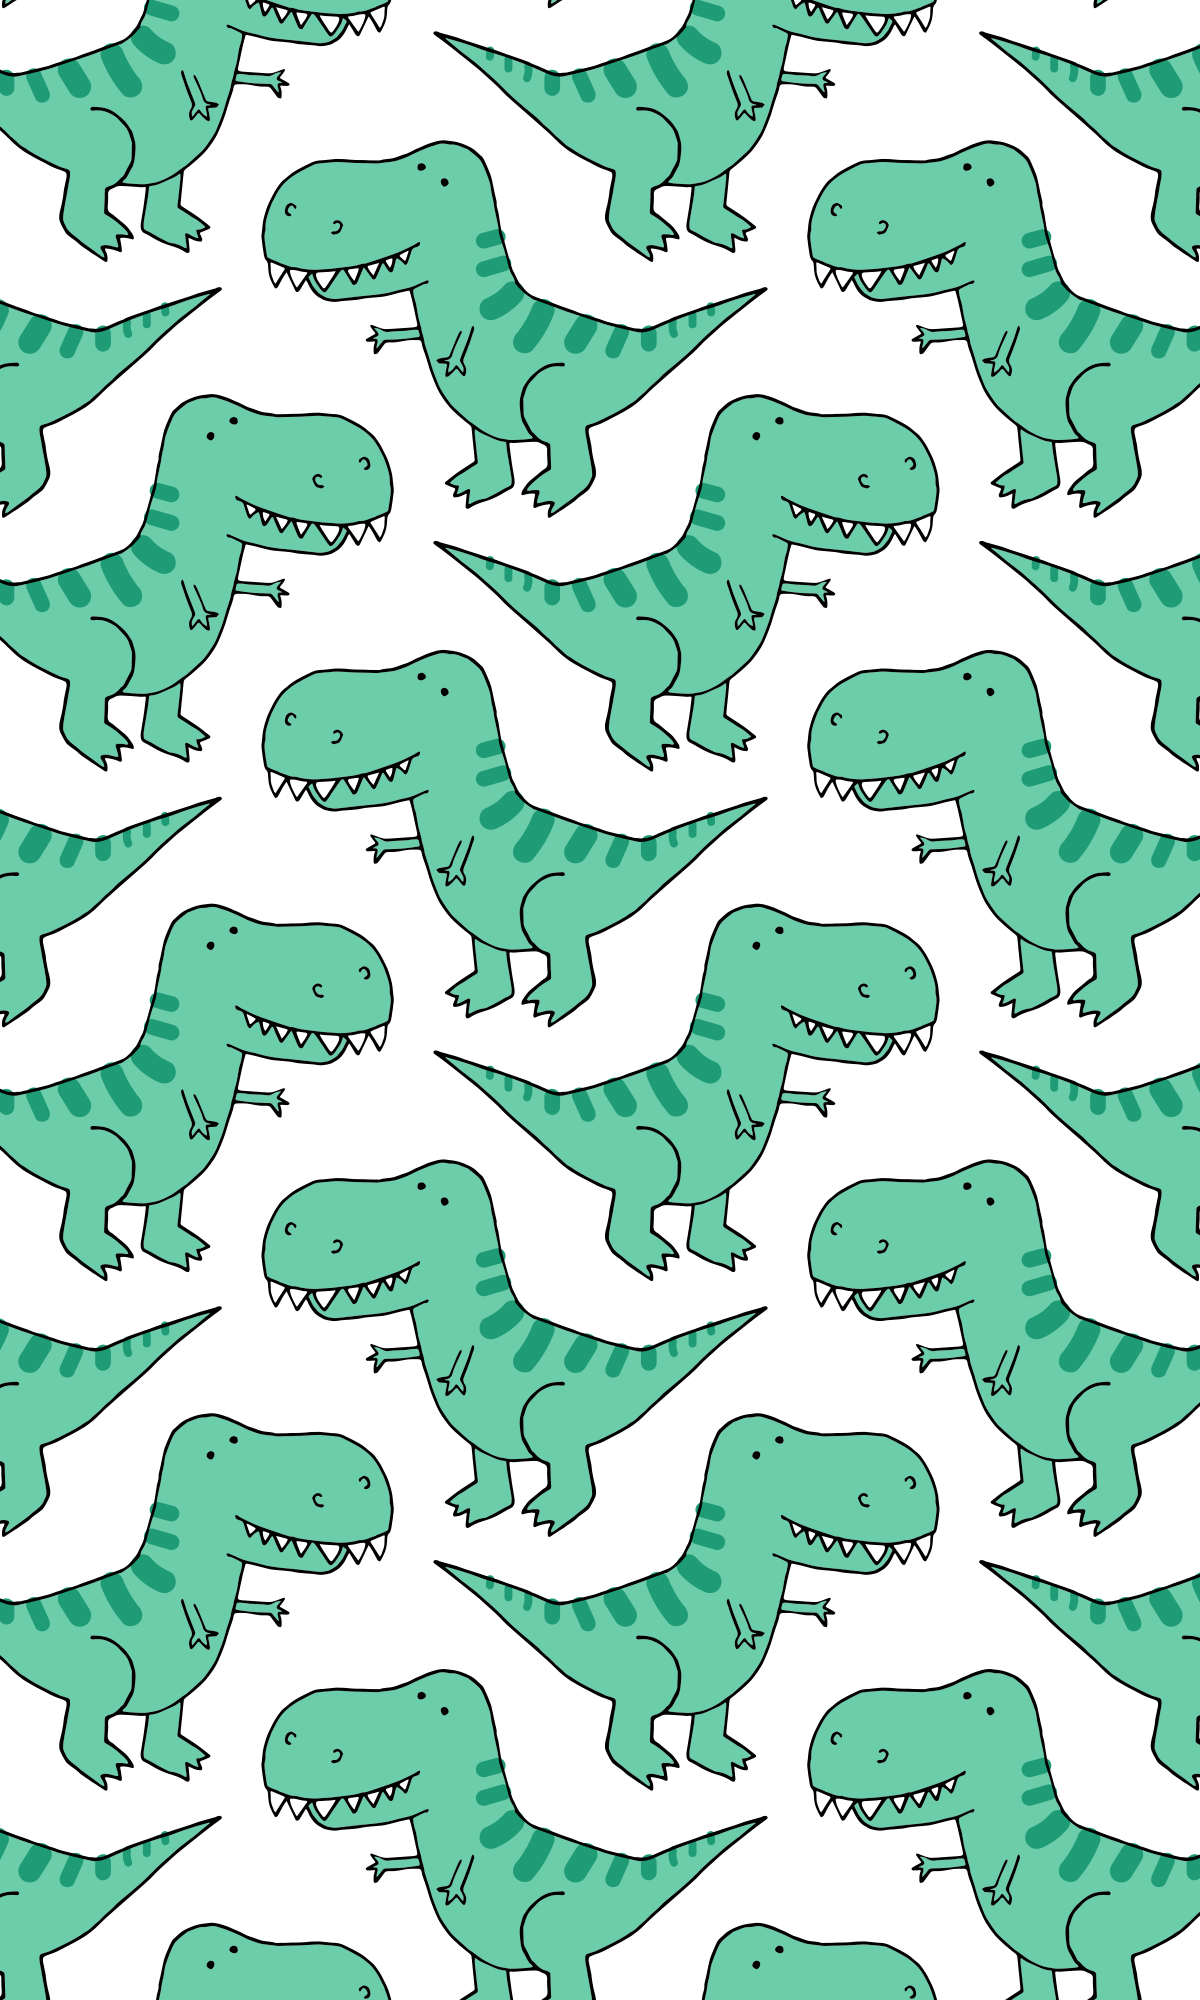 iPhone XS Case - T-Rex Dinosaur Pattern (PATTTREX1-C) by Happy Cat Prints #dinosaurillustration